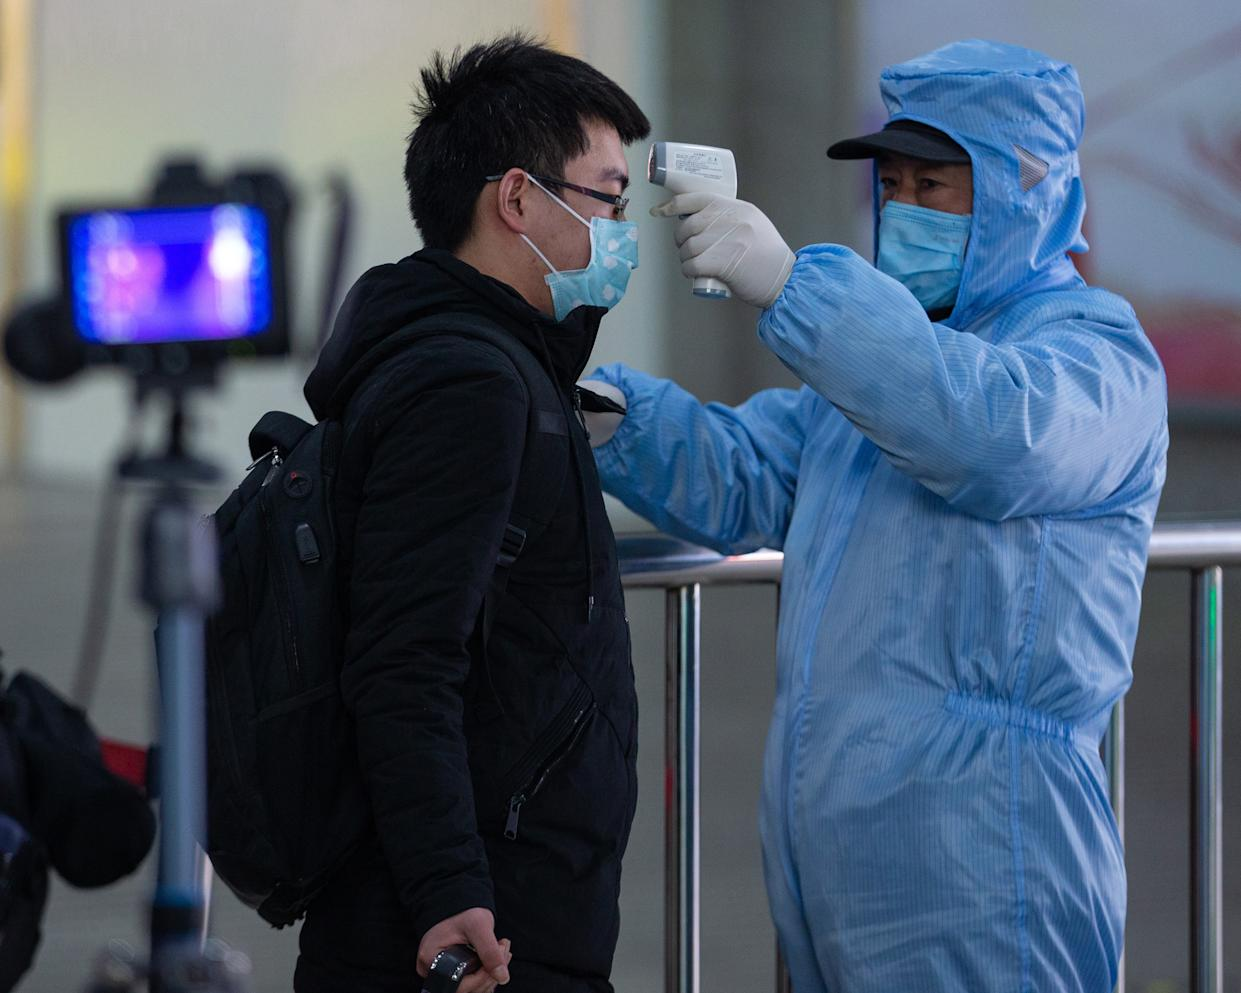 A Chinese worker wearing the protective clothing checks passenger's body temperatures for prevention of the new coronavirus and pneumonia at the exit of Nanjing Railway Station during the Chinese New Year or Spring Festival holiday in Nanjing City, east China's Jiangsu Province on January 29th, 2020. (Photo by Su Yang / Costfoto/Sipa USA)